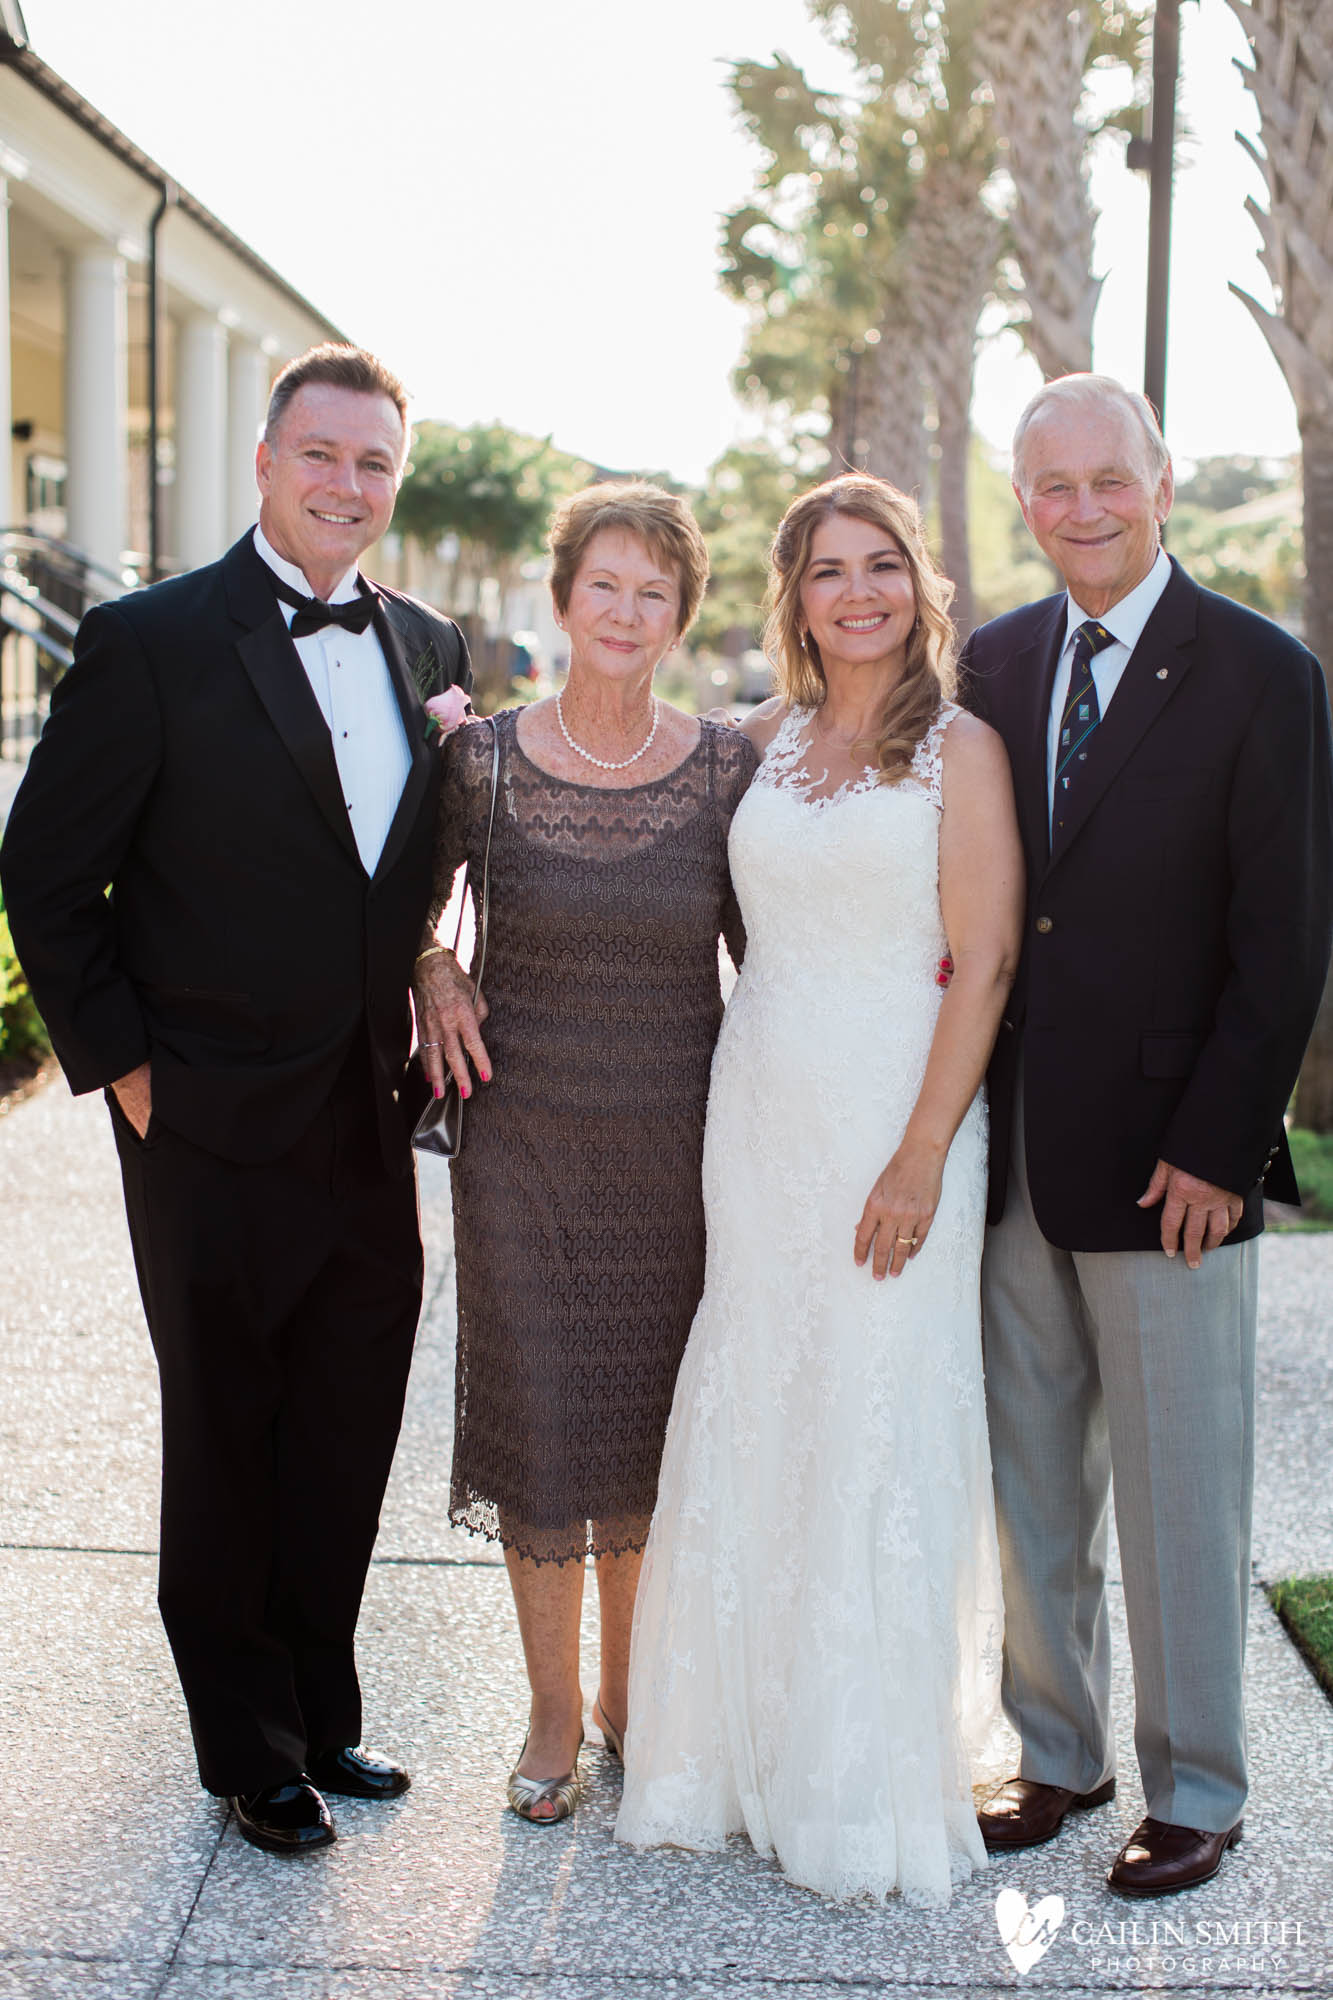 Kalina_Andy_Jekyll_Island_Westin_Hotel_Wedding_Photography_0069.jpg